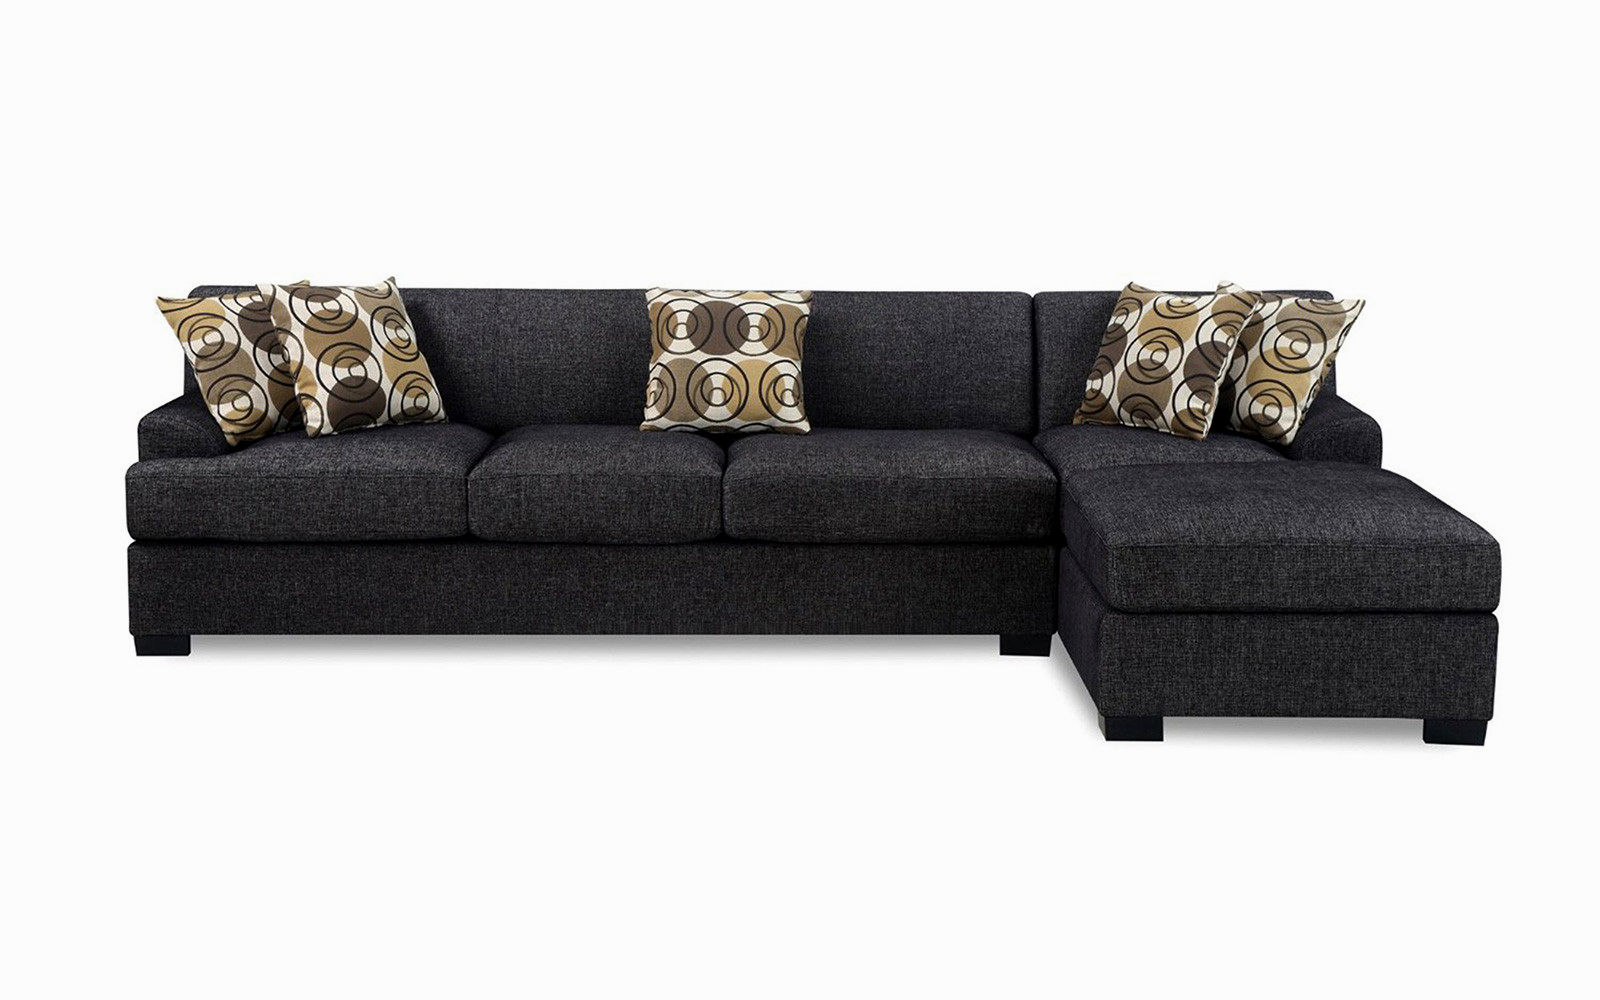 sensational sofa with reversible chaise lounge picture-Unique sofa with Reversible Chaise Lounge Inspiration